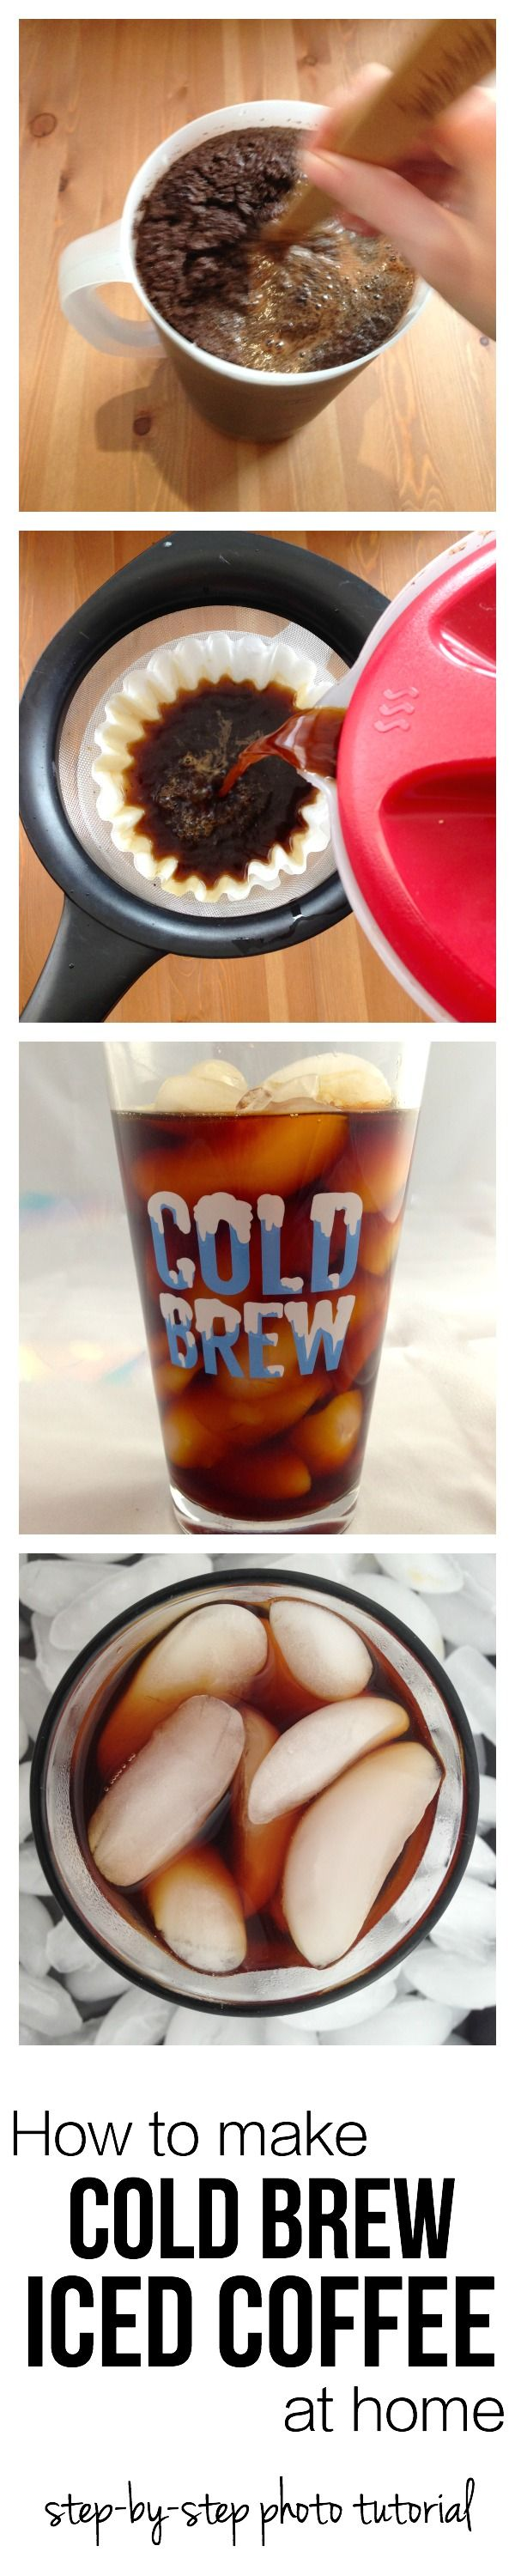 Learn how to make COLD BREW ICED COFFEE at home.  It's better than what you get at the coffee shop and so QUICK and EASY to make.  Not to mention, you'll save a bunch of money and love always having iced coffee ready to drink.